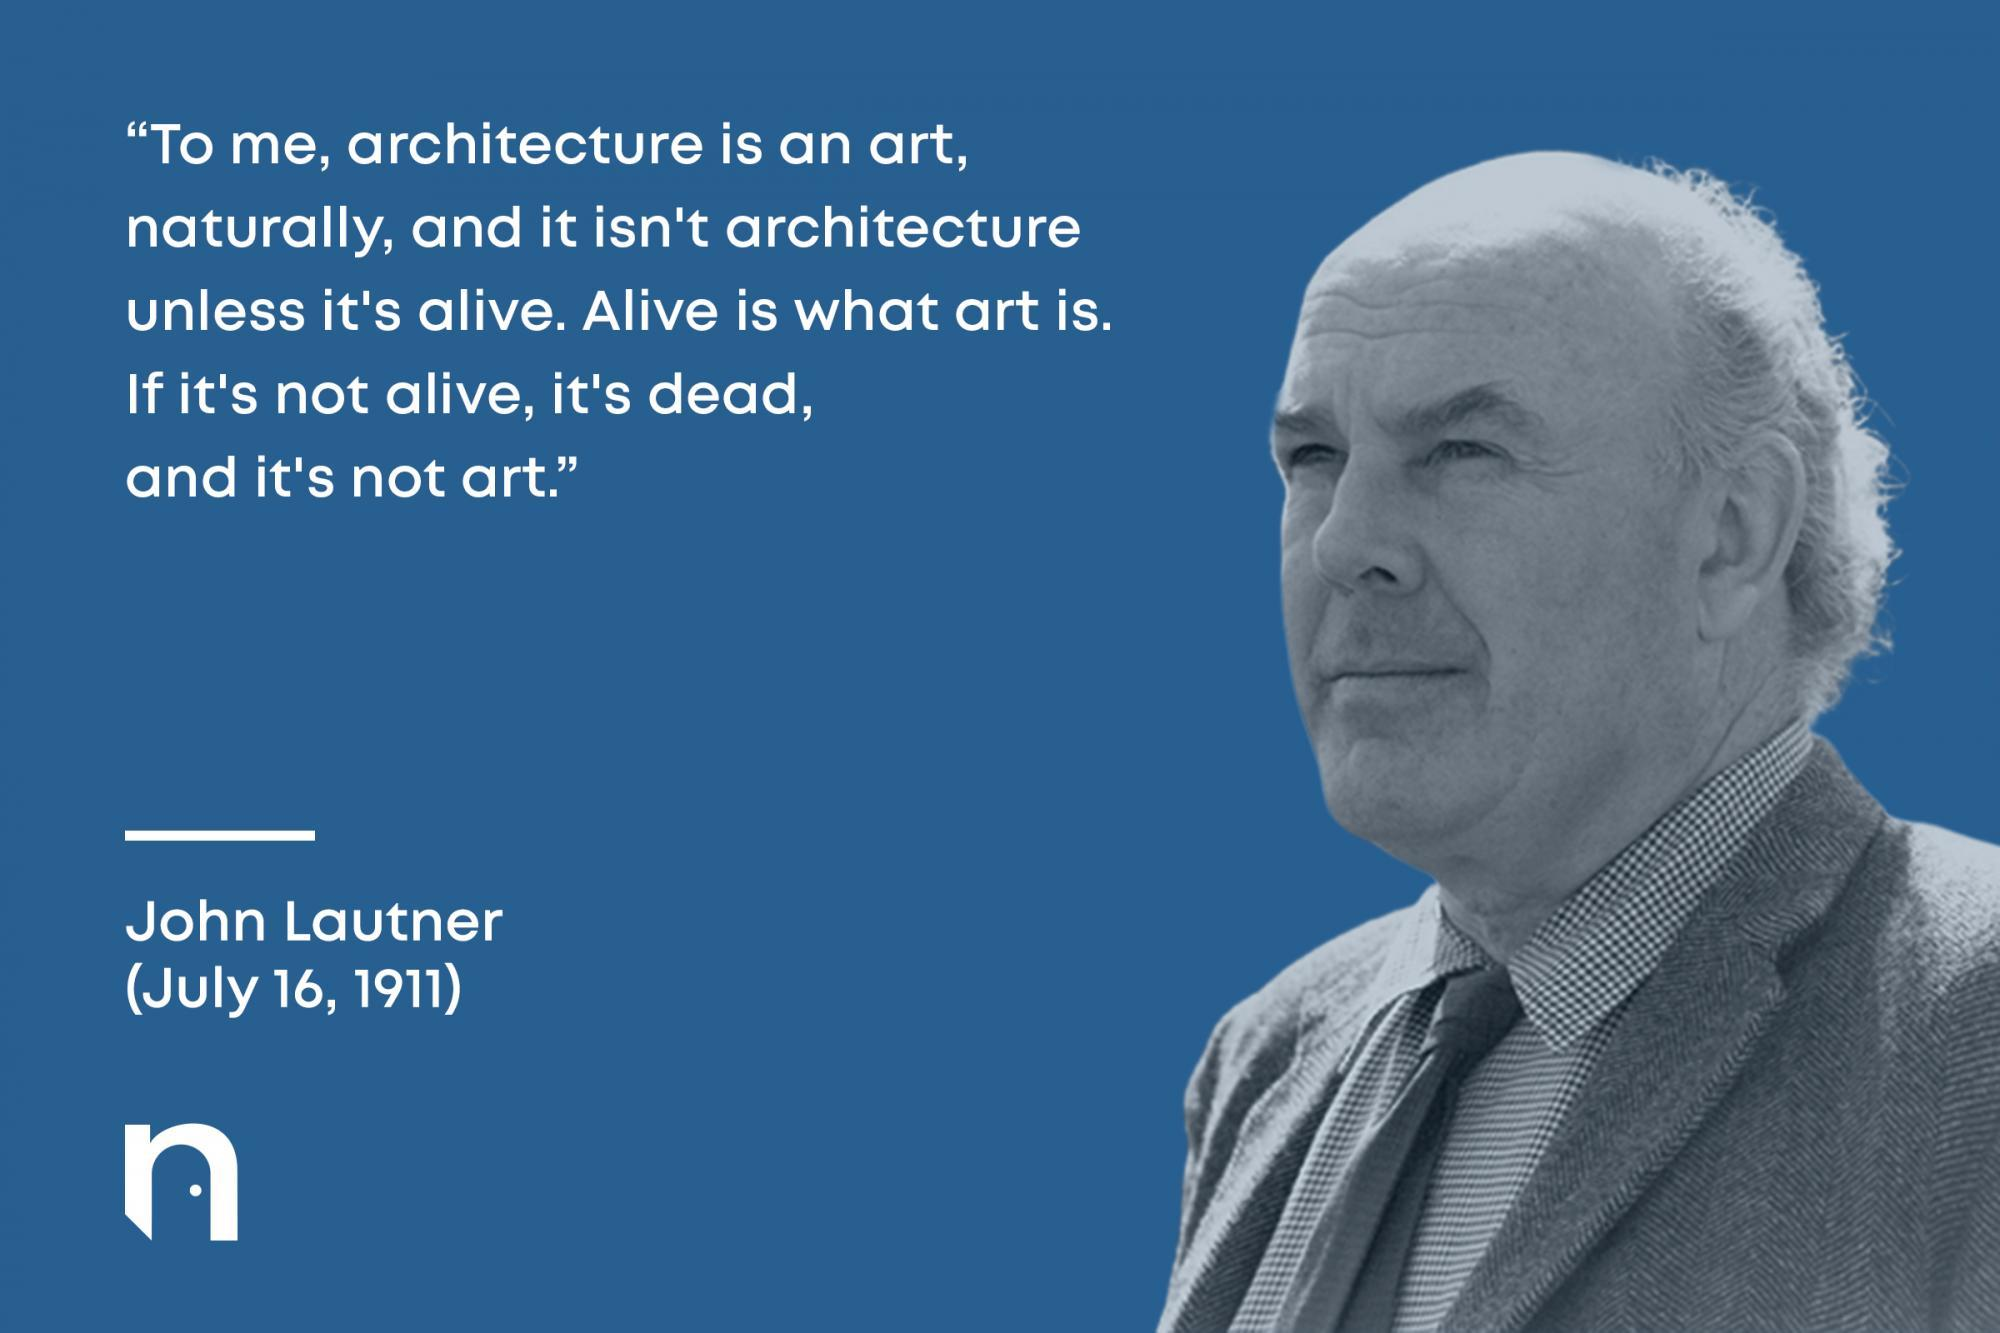 John Lautner Architect Quote